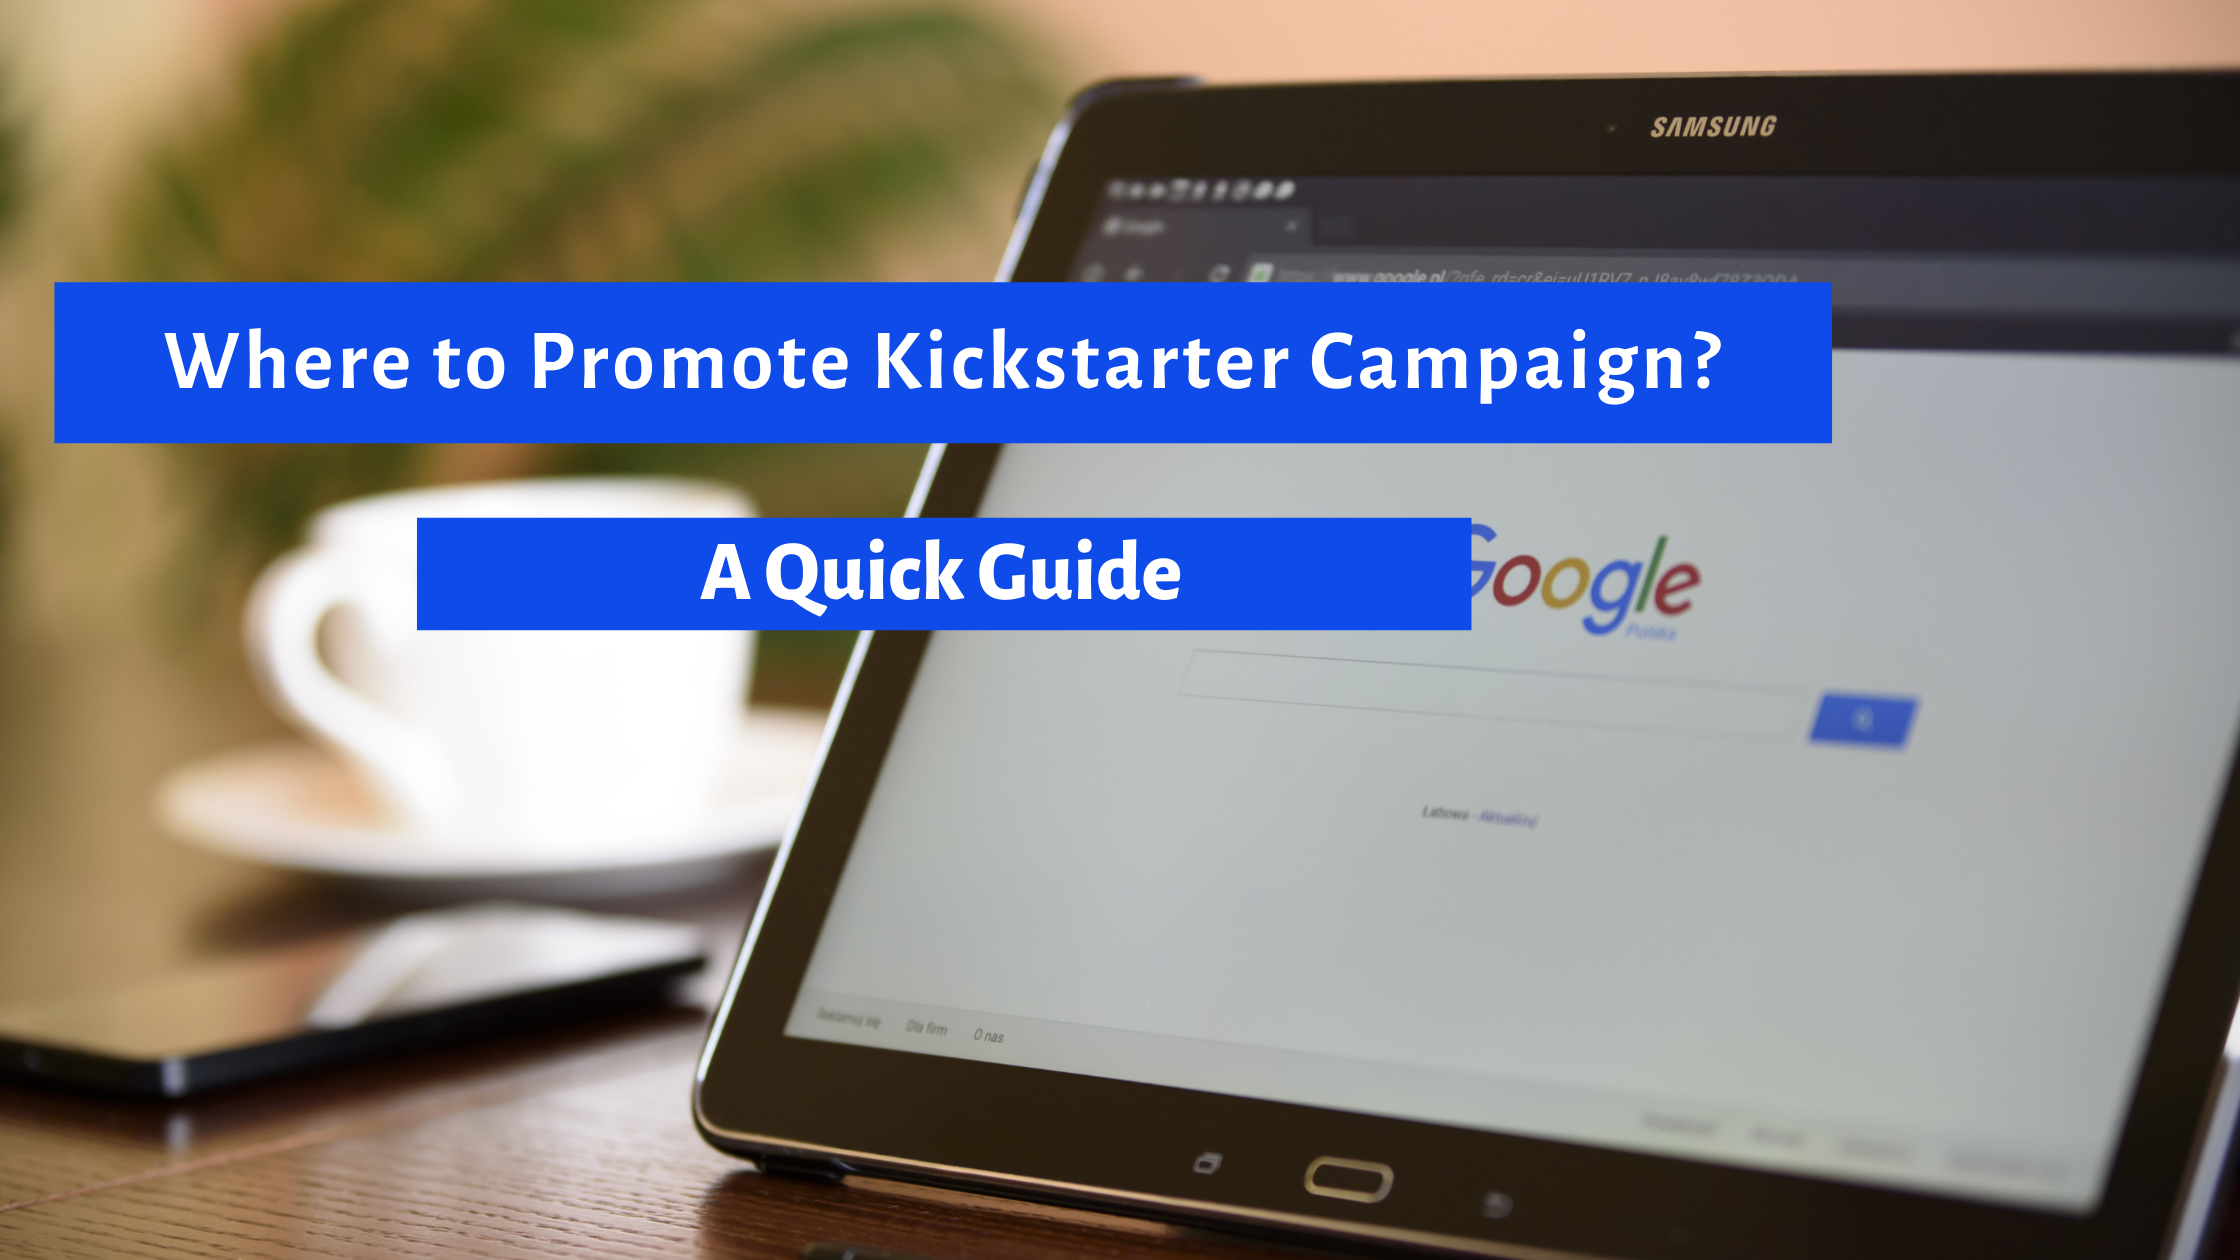 Where to Promote Kickstarter Campaign? A Quick Promotion Guide.